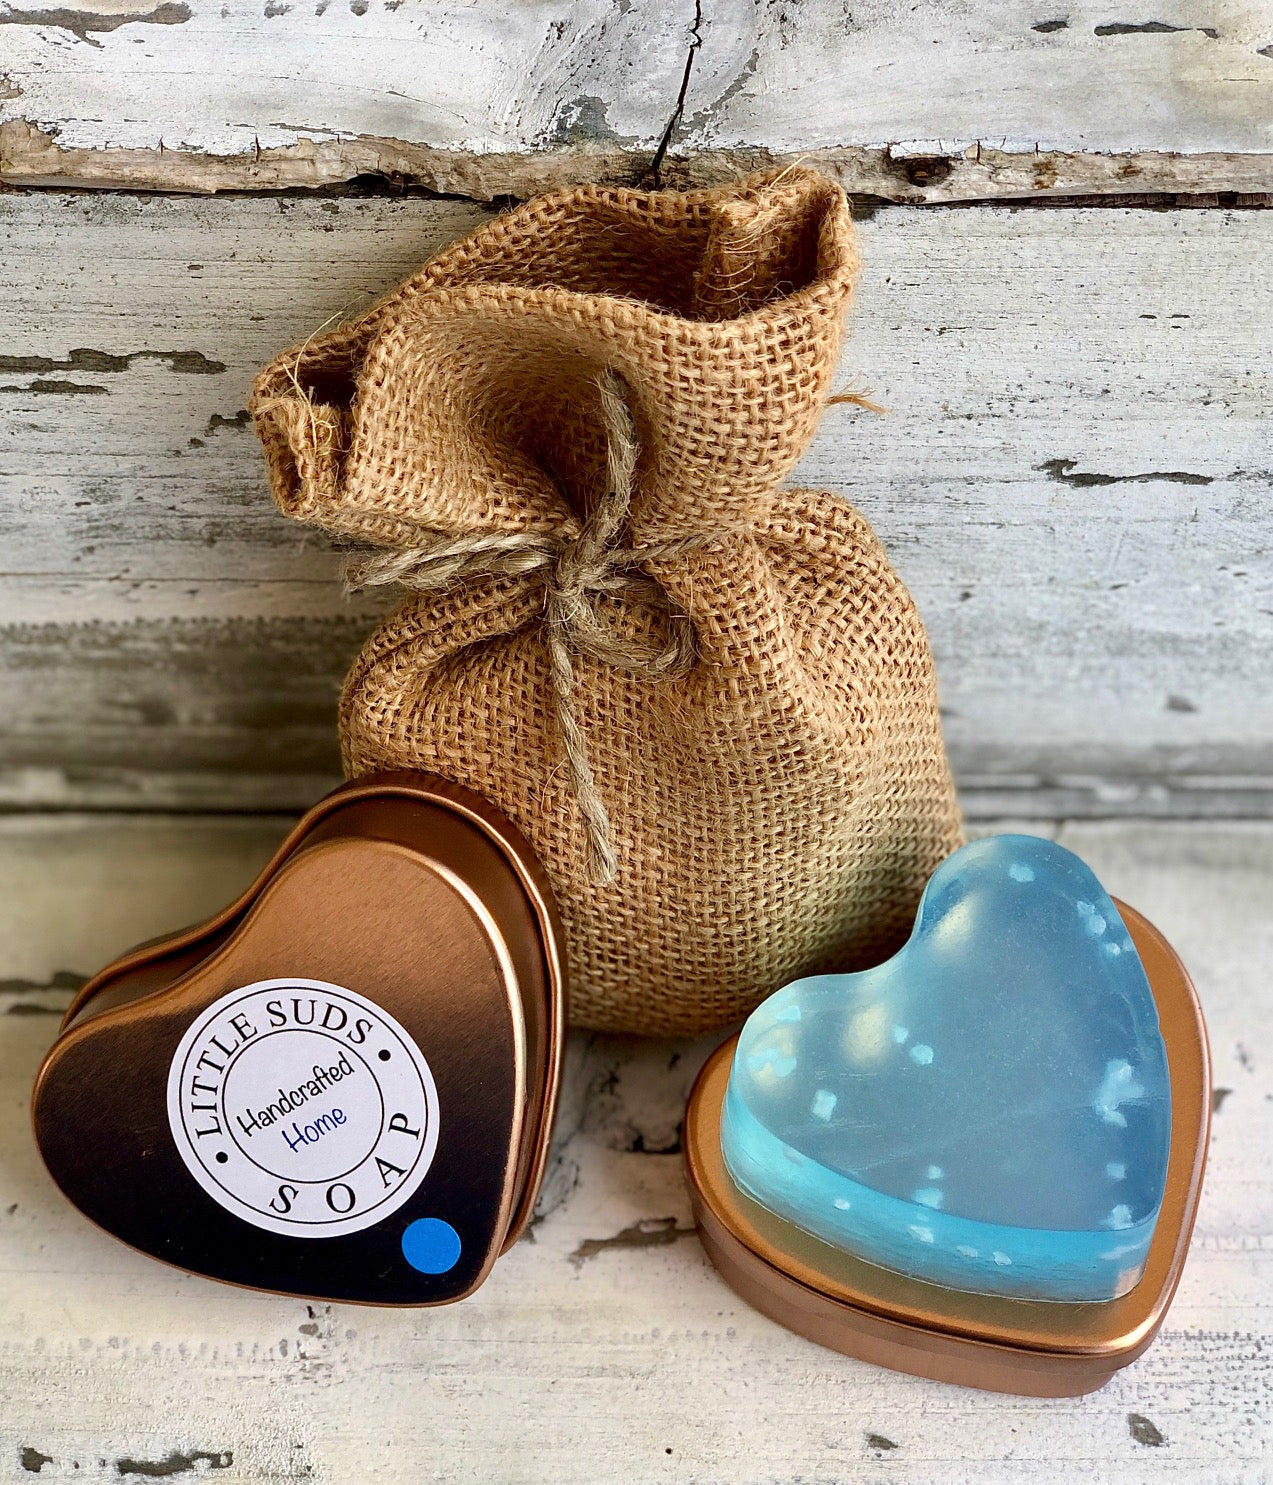 Feeling Beachy Big Heart Soap